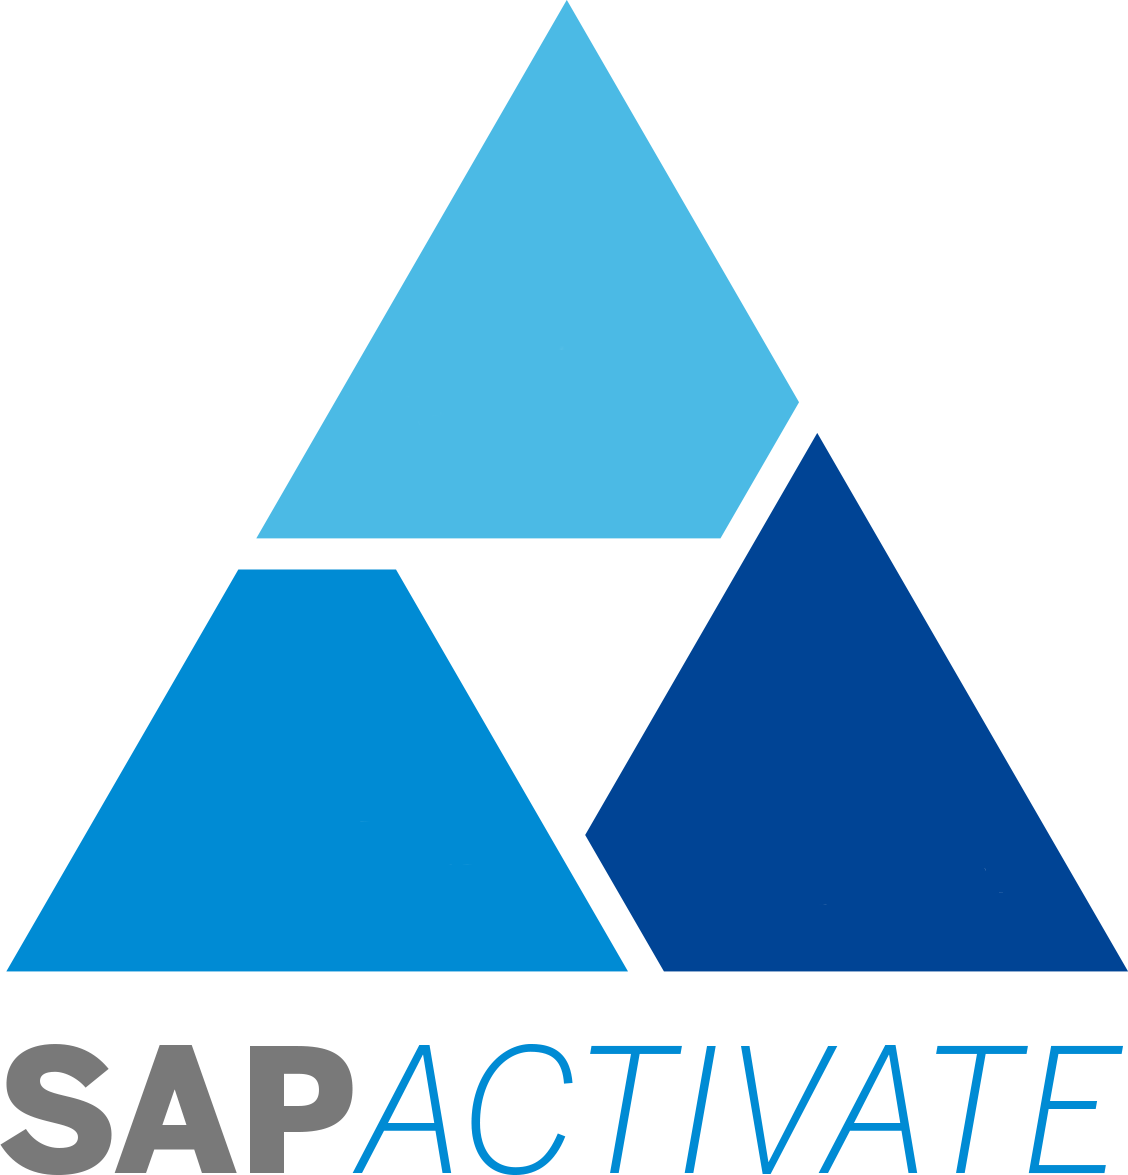 """Sap S/4hana How To """"manage Your Solution"""" With Sap - Sap Activate Methodology Clipart (1128x1175), Png Download"""